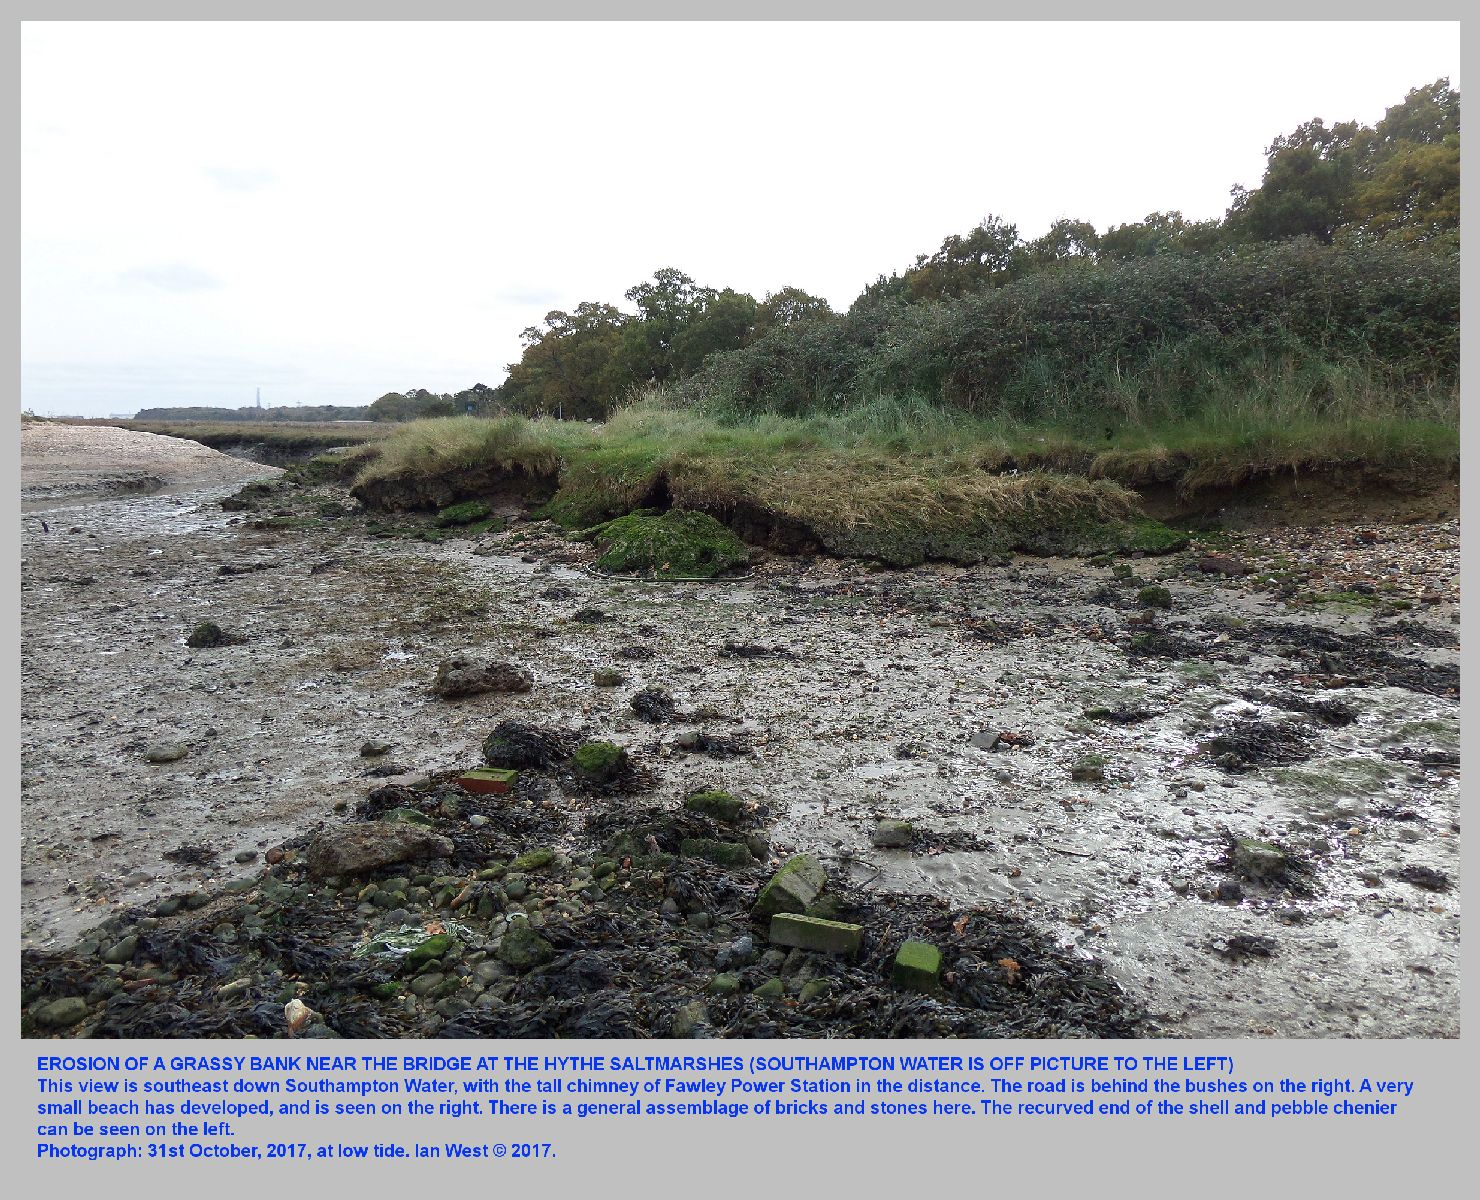 Erosion and collapse of a grassy bank near the bridge, the saltmarshes at Hythe, Hampshire, 31st October 2017